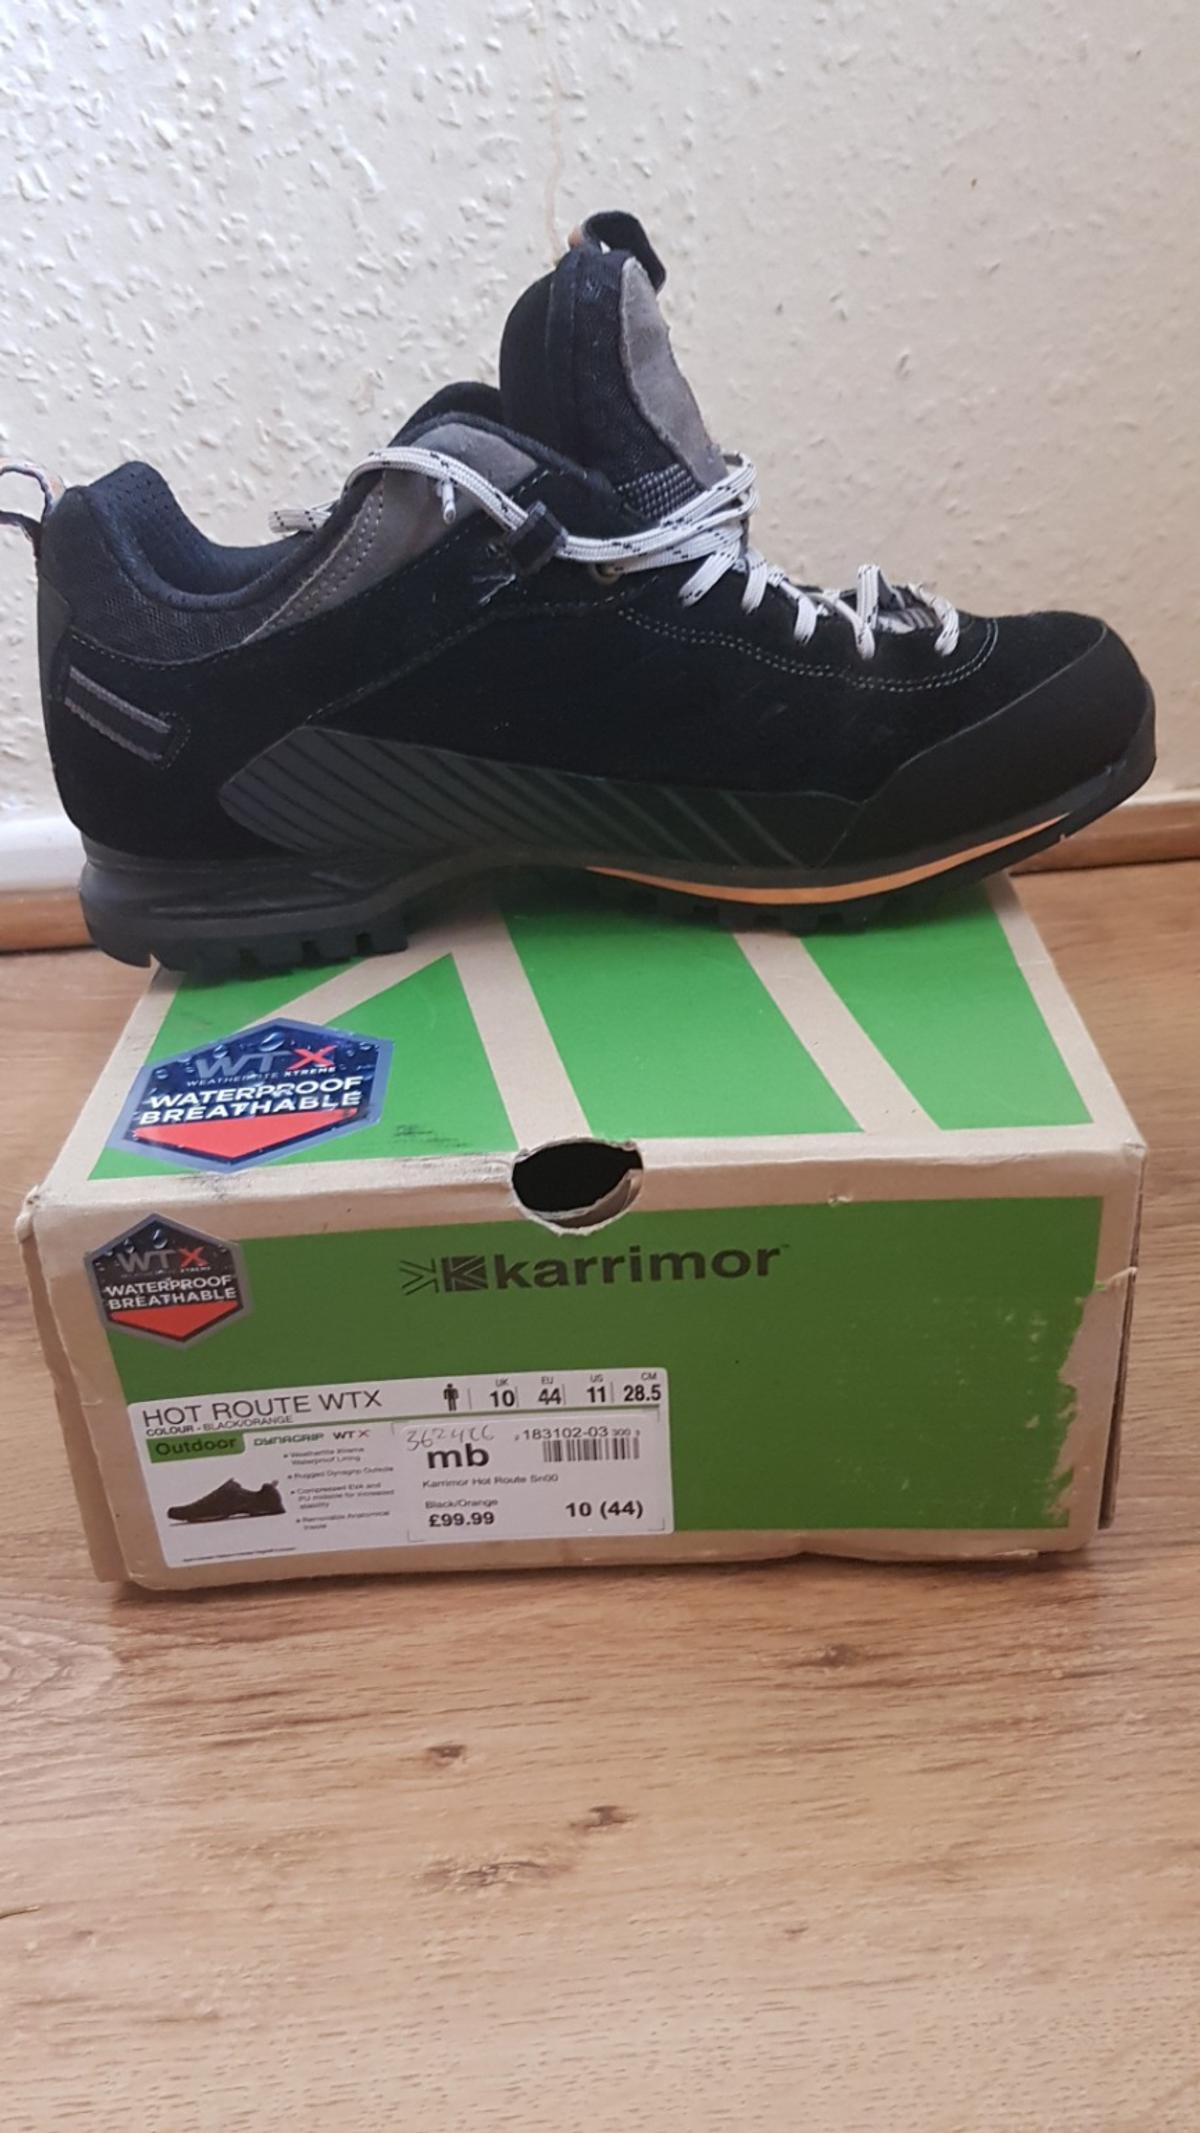 factory price great prices entire collection karrimor waterproof walking shoes in CV4 Coventry for £10.00 for ...